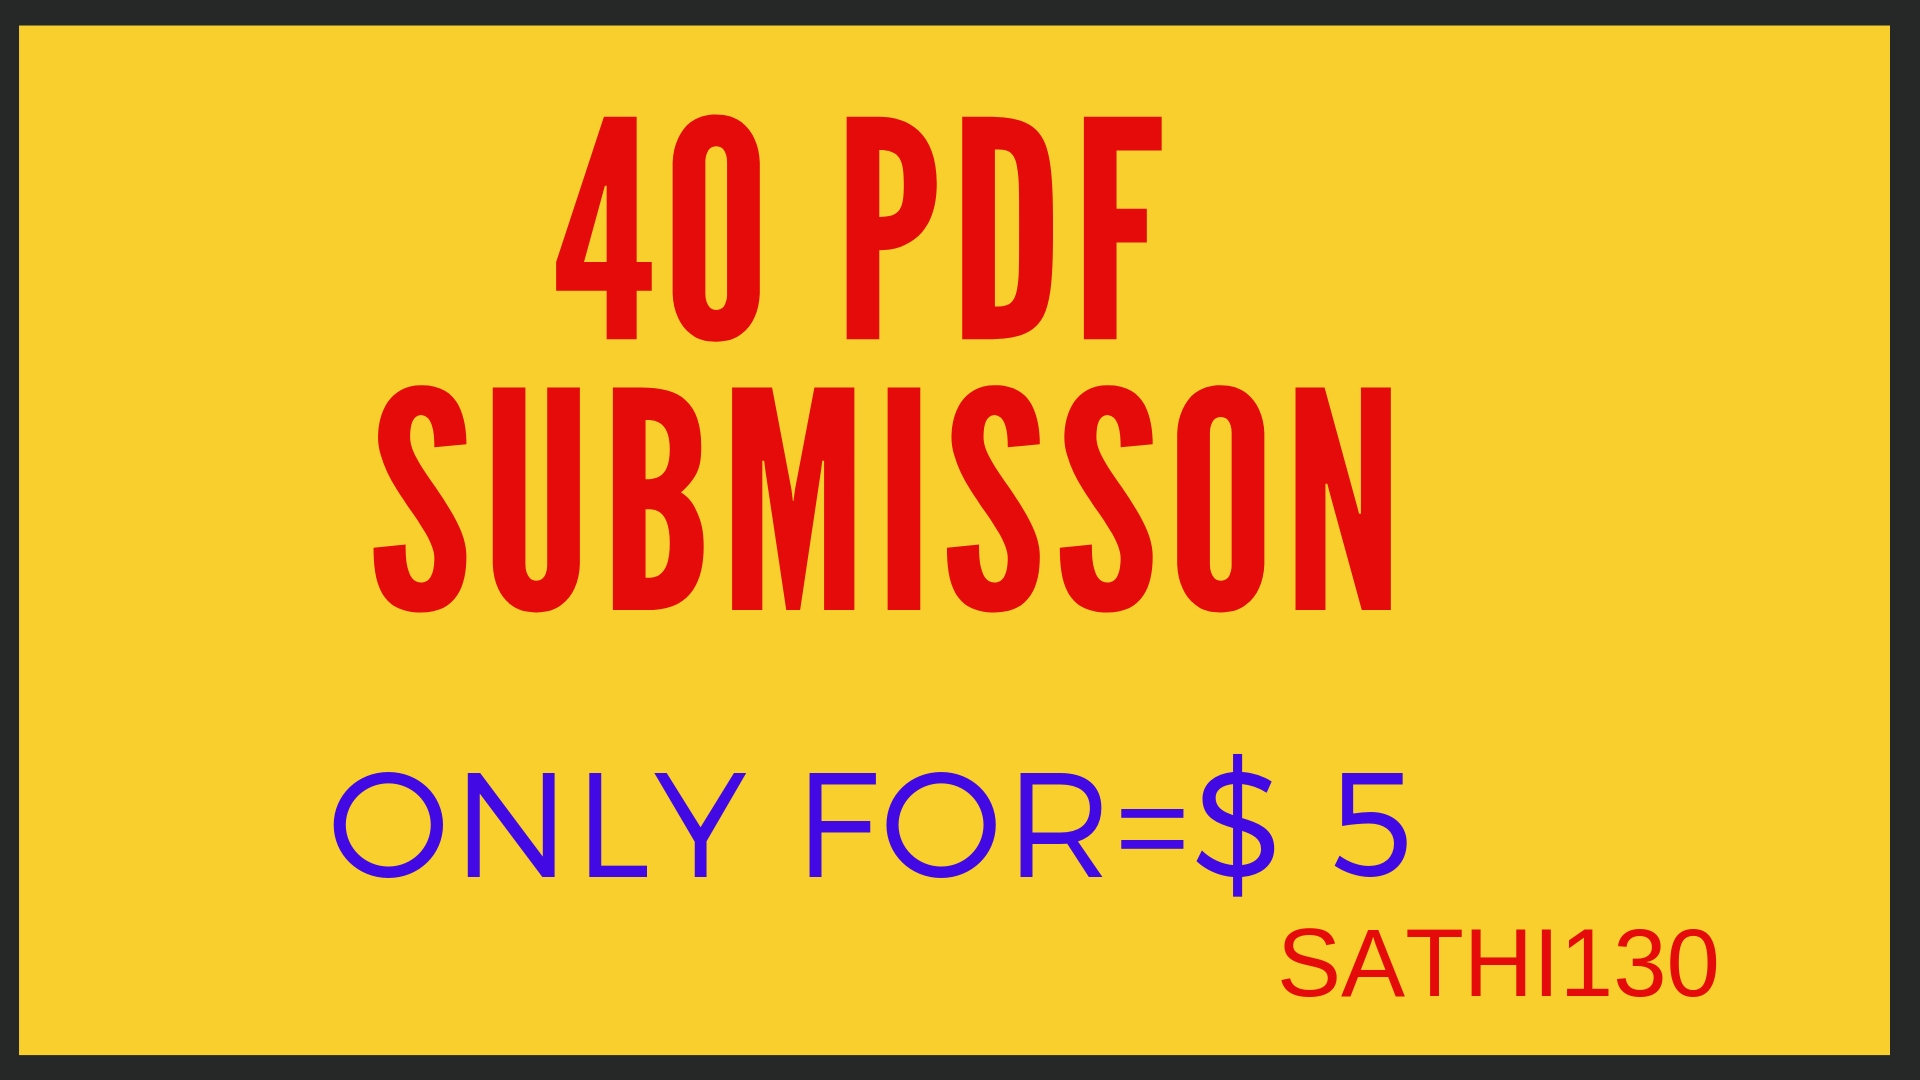 Manually 40 PDF submit in 40 high quality document sharing sites